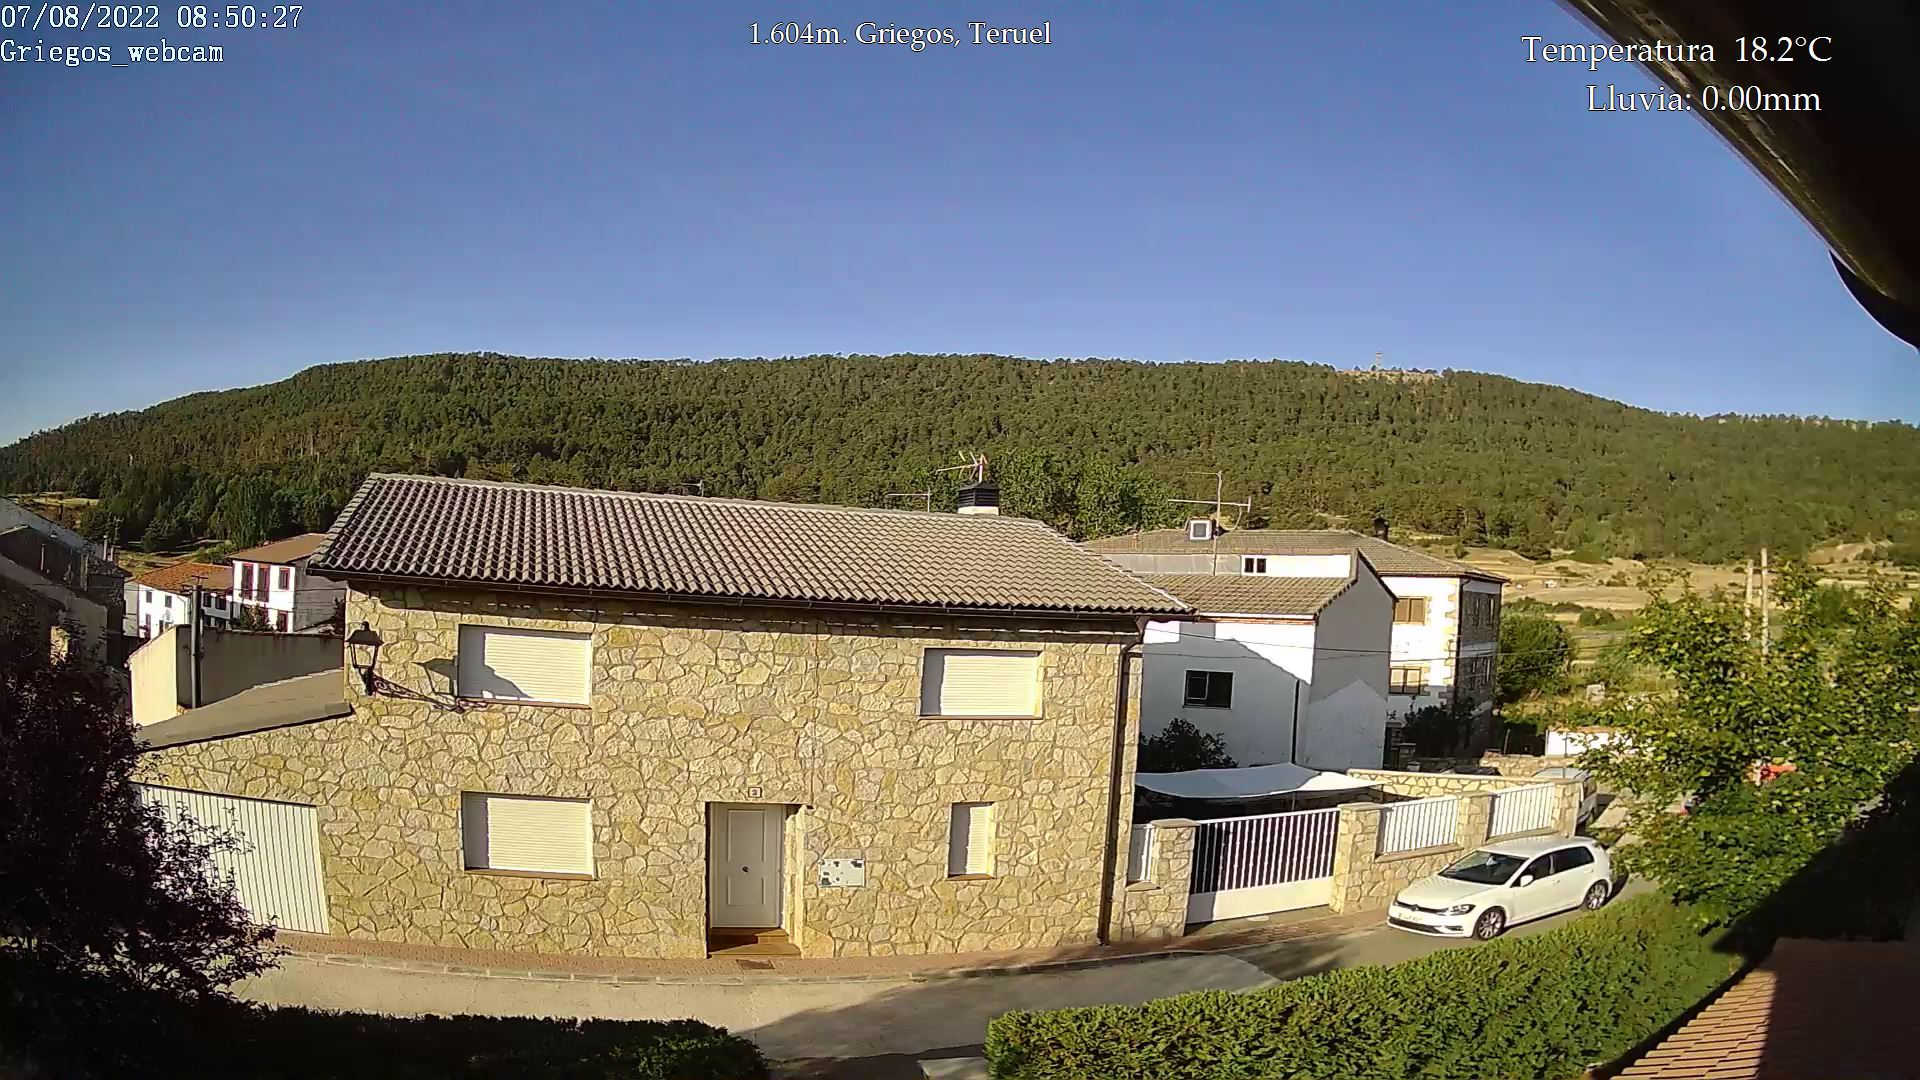 Webcam en Griegos